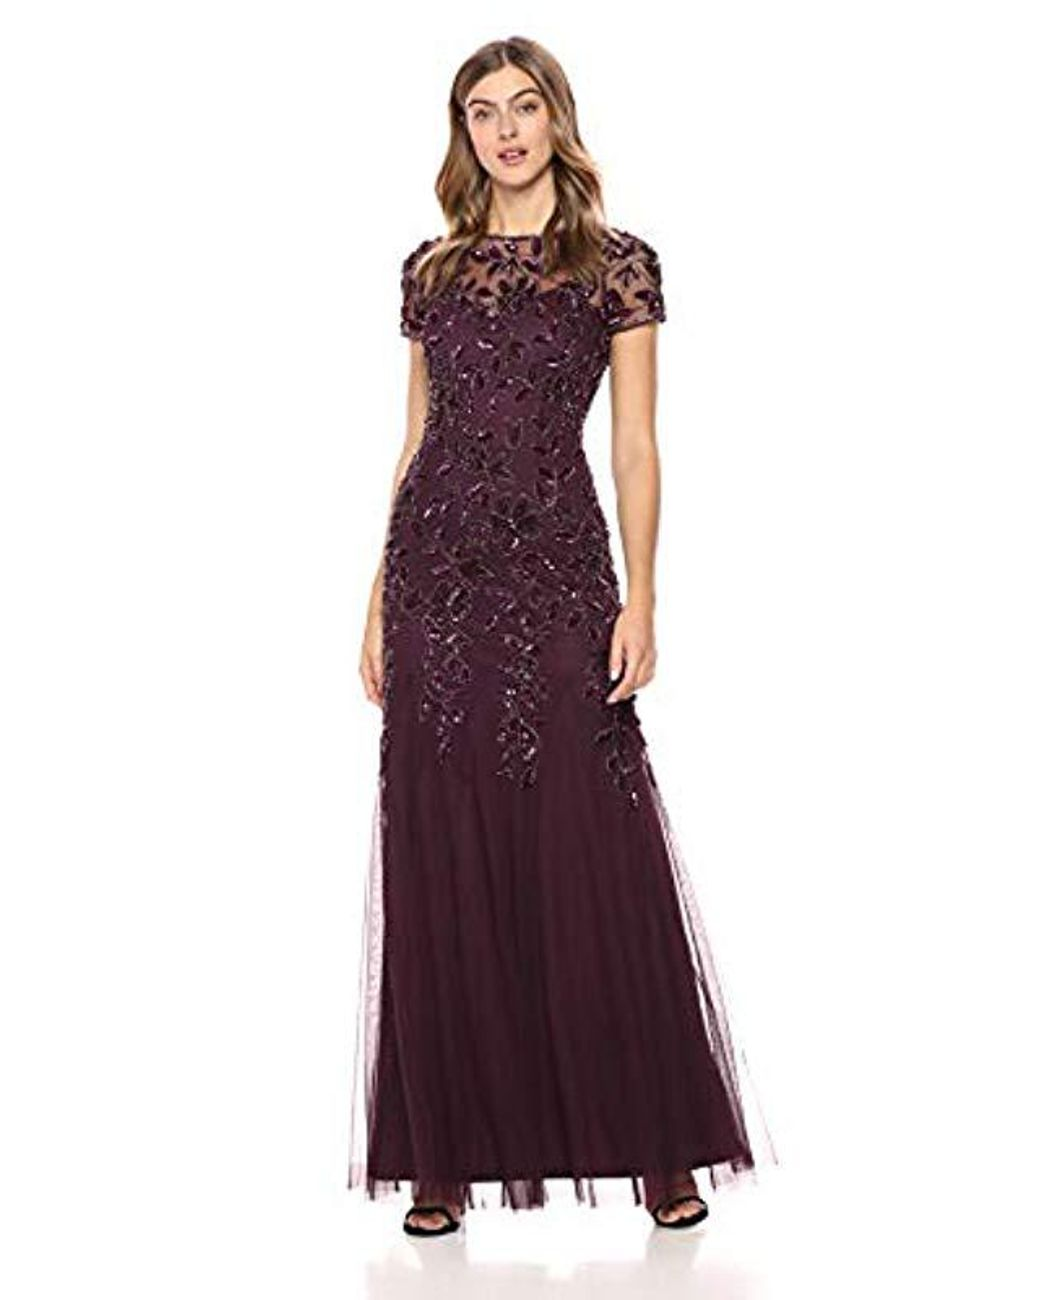 11b6e64d16c Adrianna Papell Short Sleeve Beaded Floral Dress in Purple - Lyst